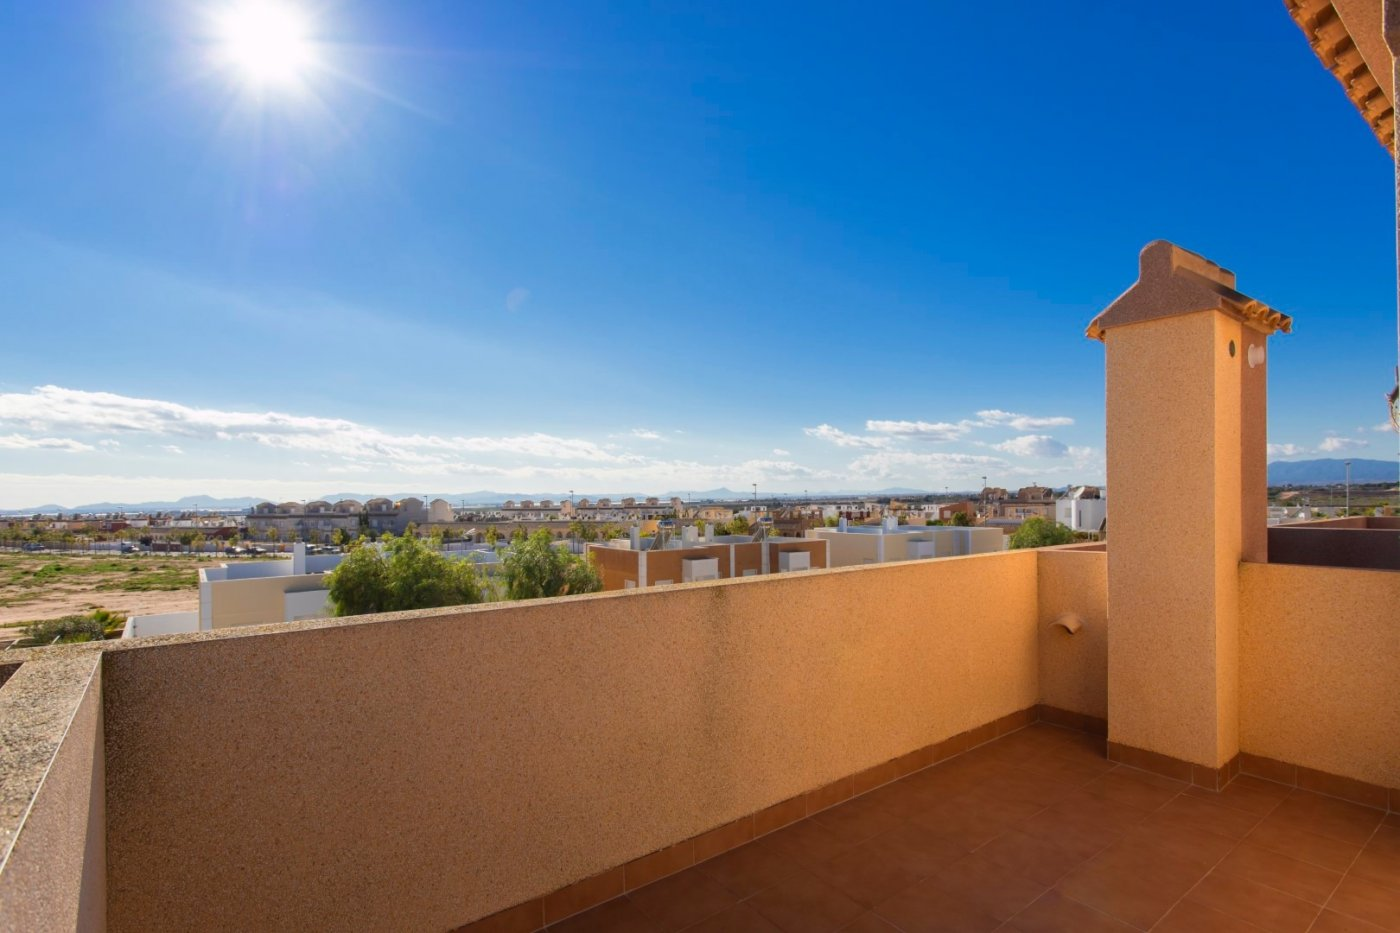 Townhouse - For Sale - Murcia - Balsicas